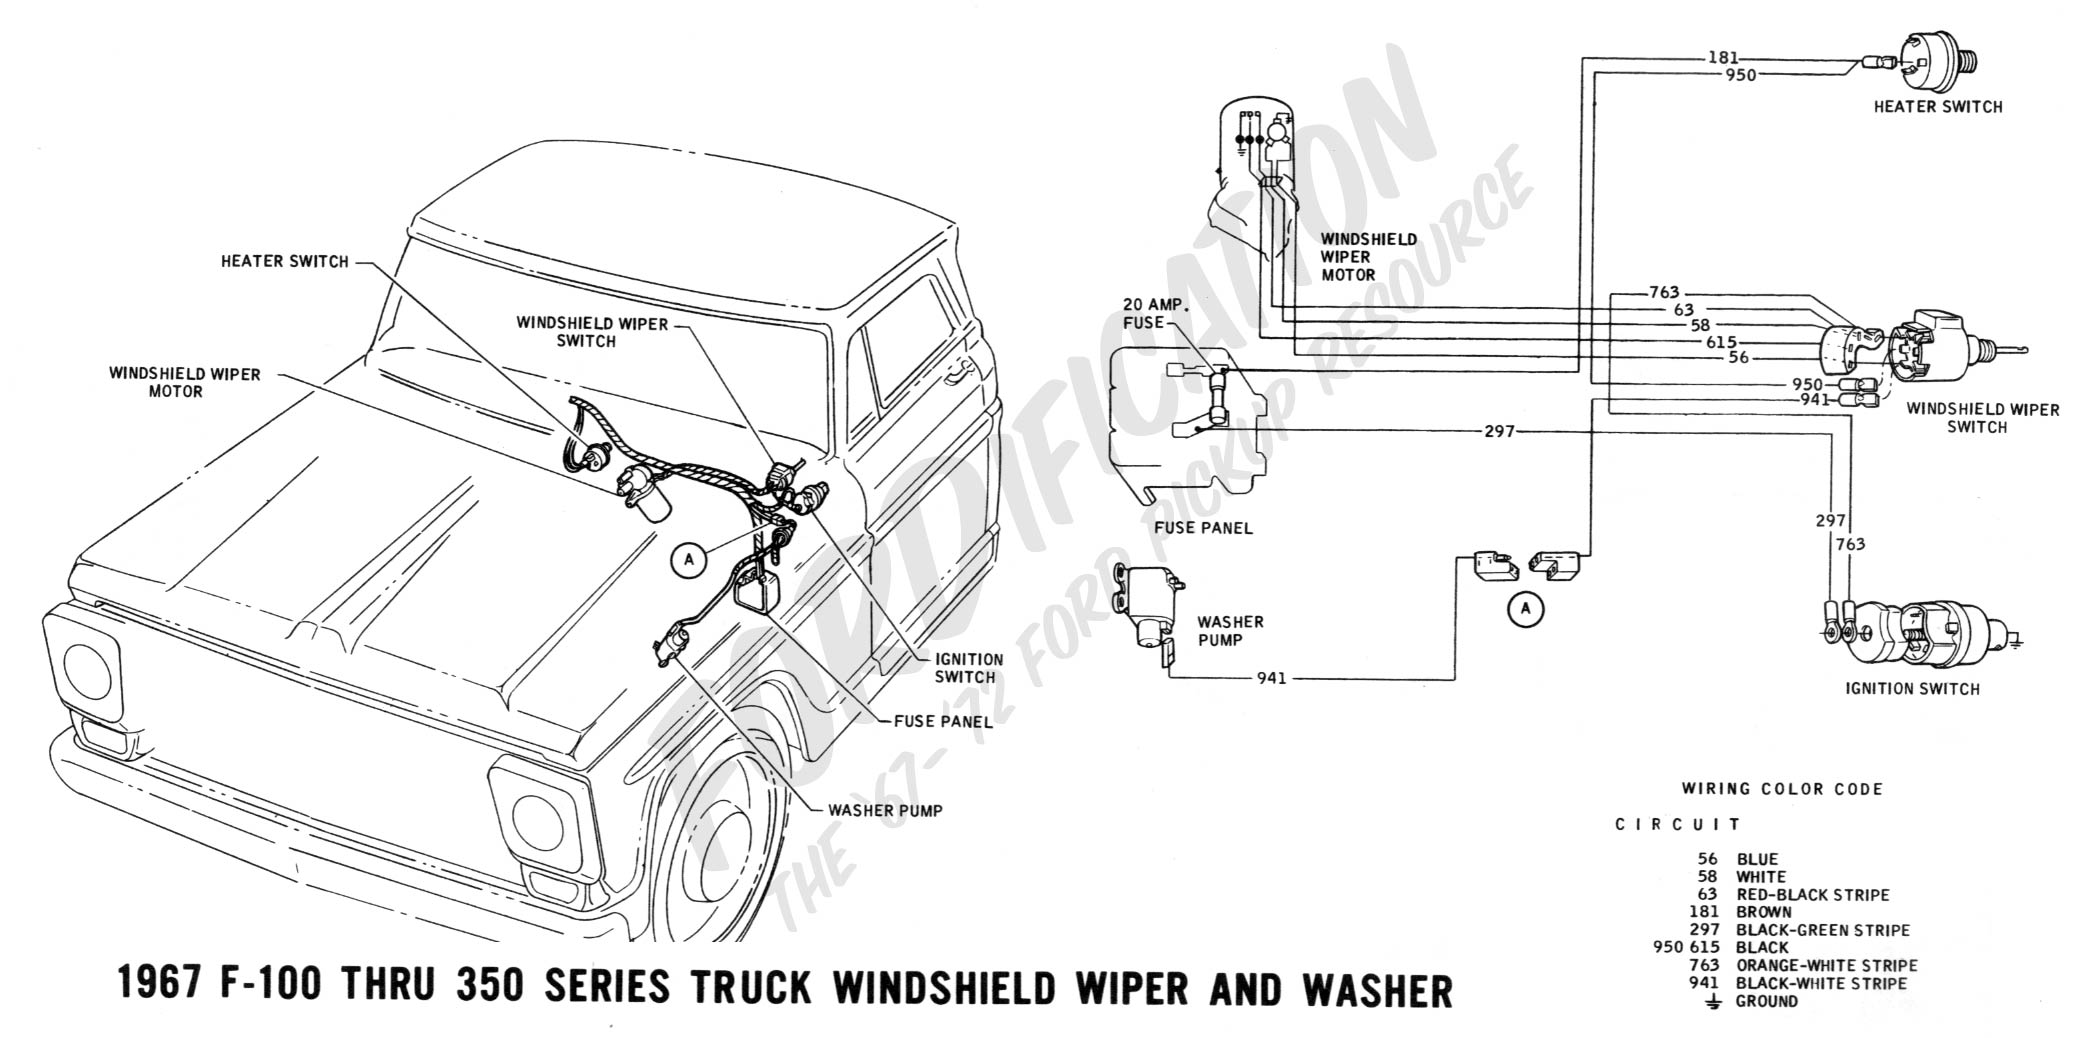 wiring 1967wipers wiper wiring diagram wiper wiring diagram for 1985 chevy vega 1971 ford f100 ignition switch wiring diagram at gsmx.co